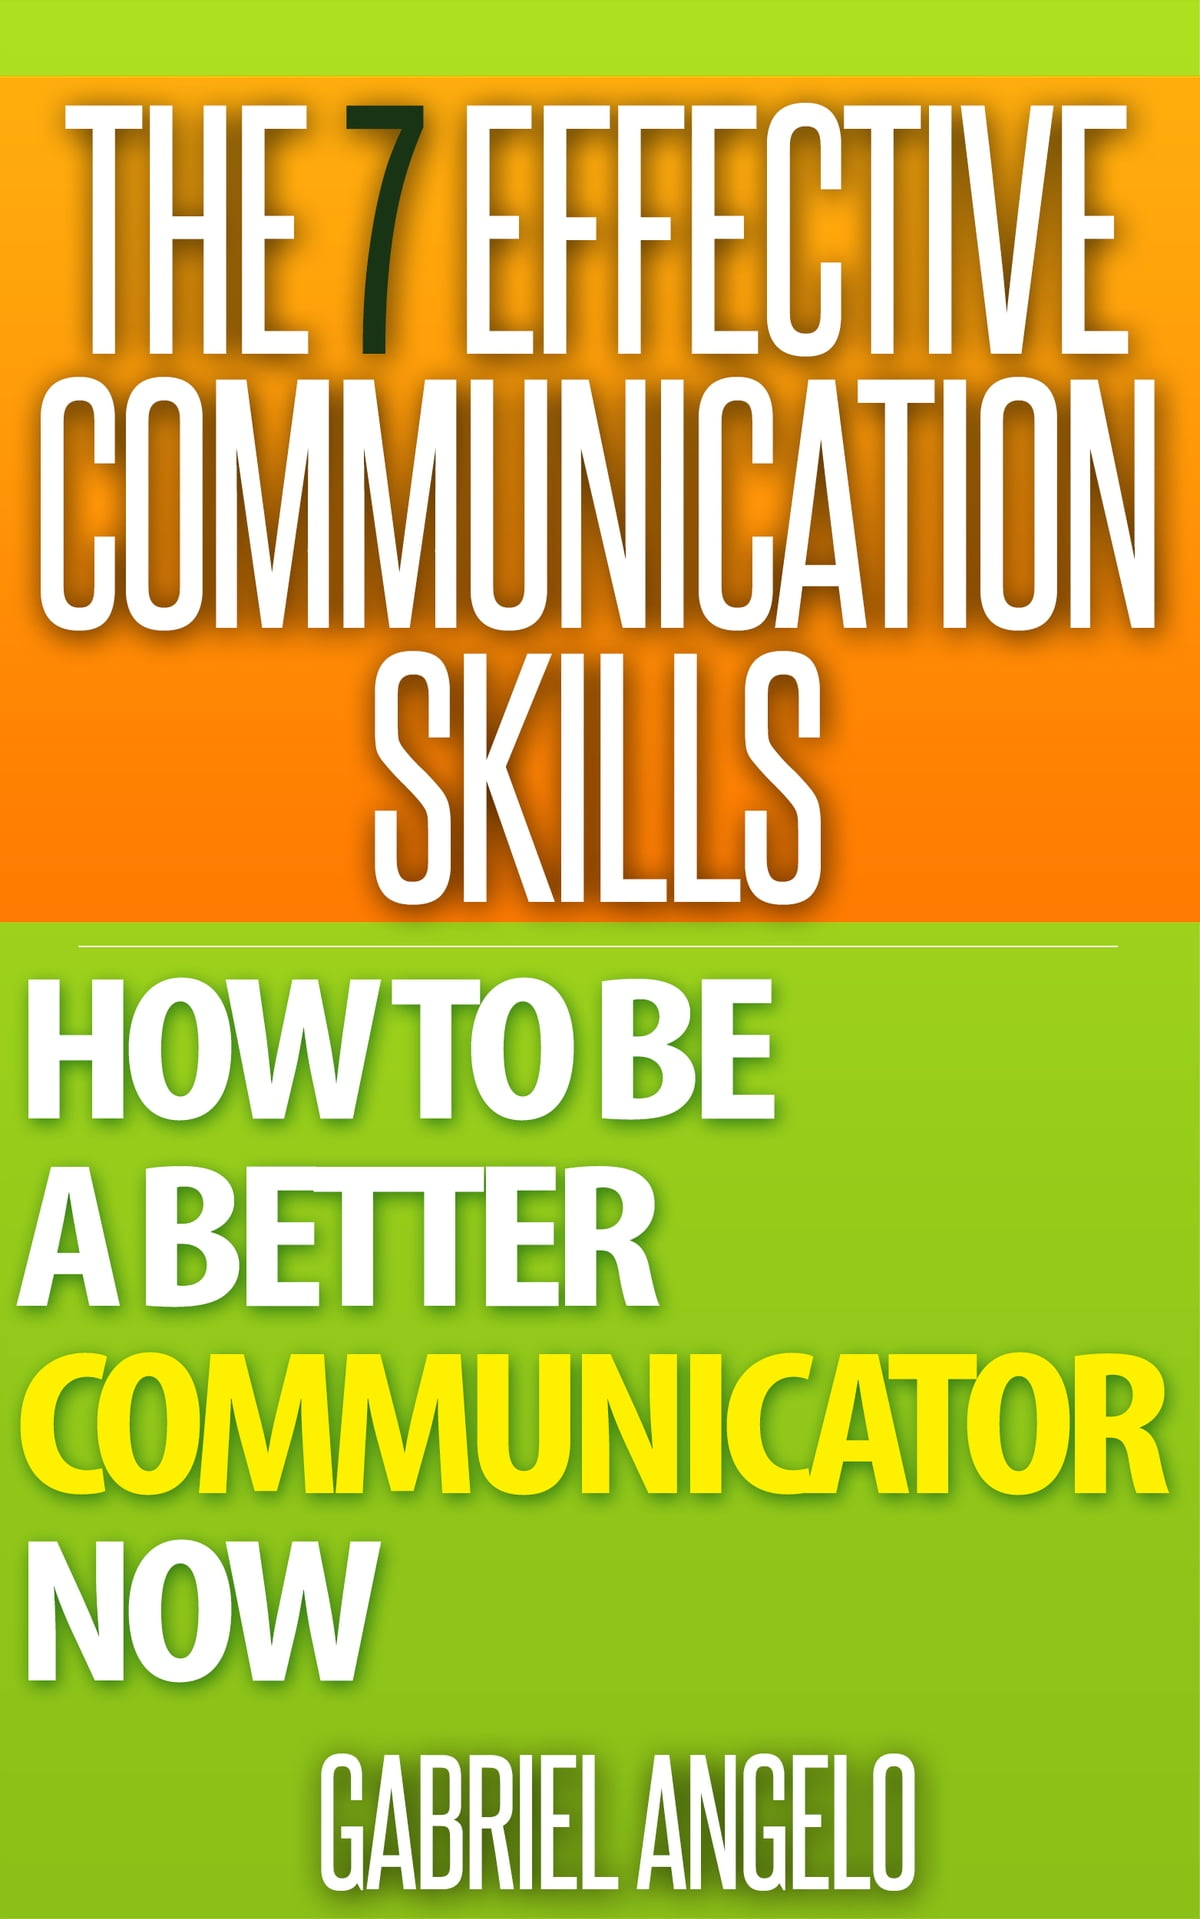 The 7 Effective Communication Skills How To Be A Better